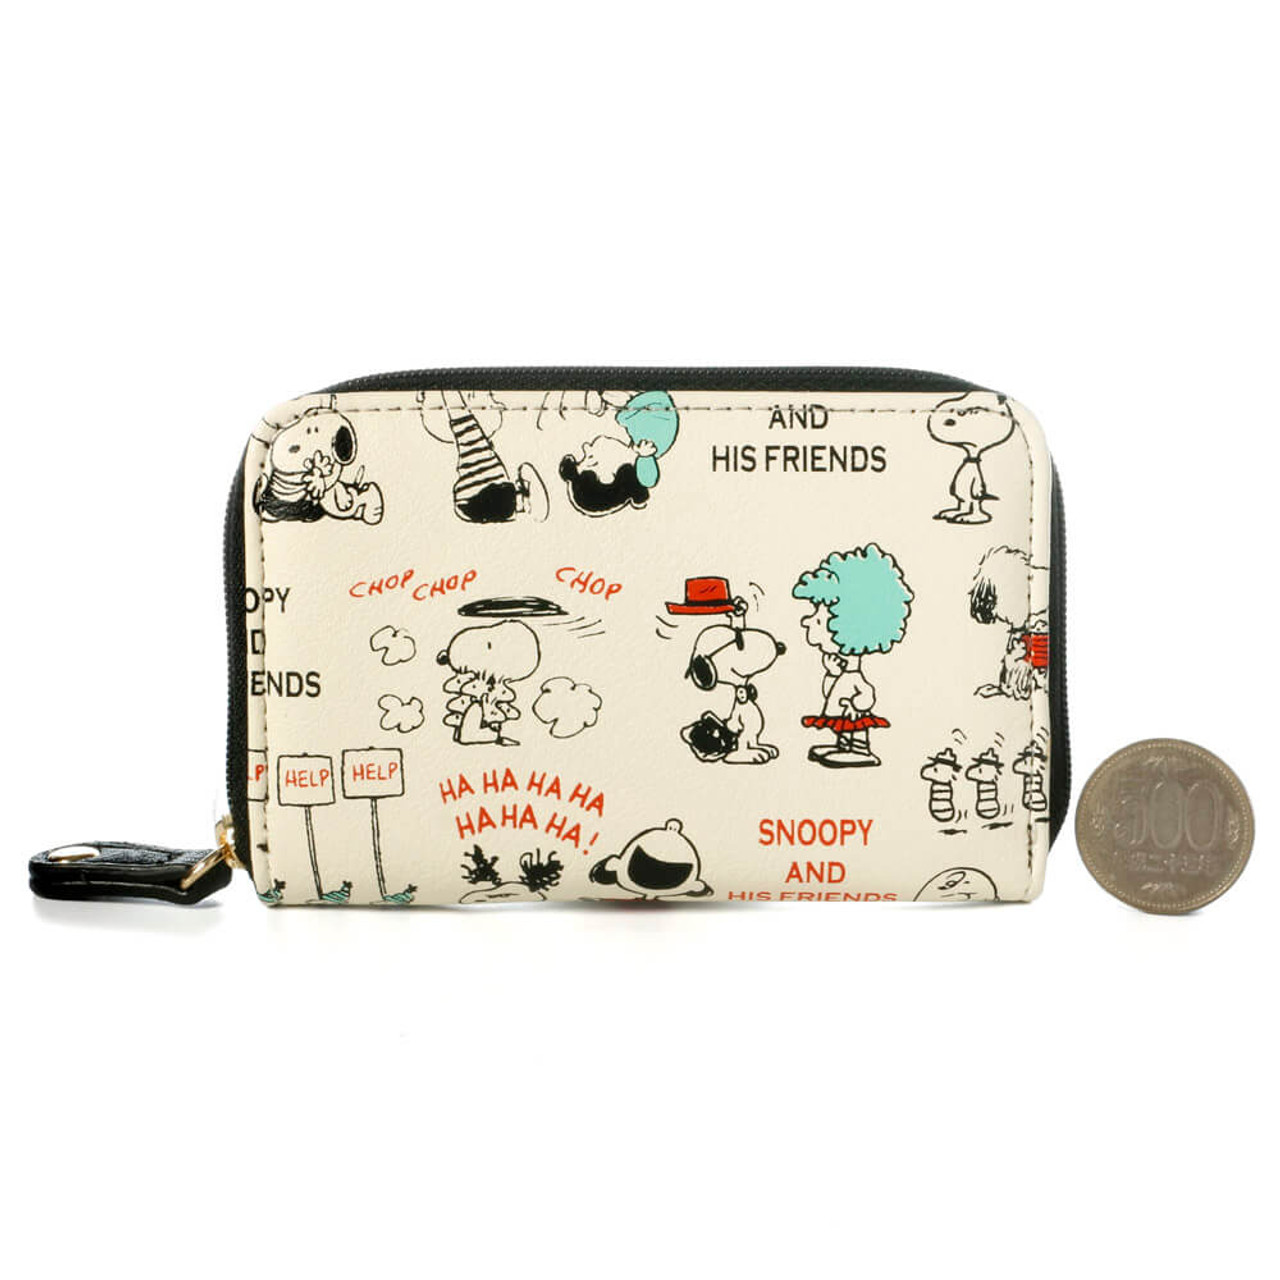 Sanrio Peanuts Snoopy Mini Envelopes Gift Card Holders Cupcake With Stickers